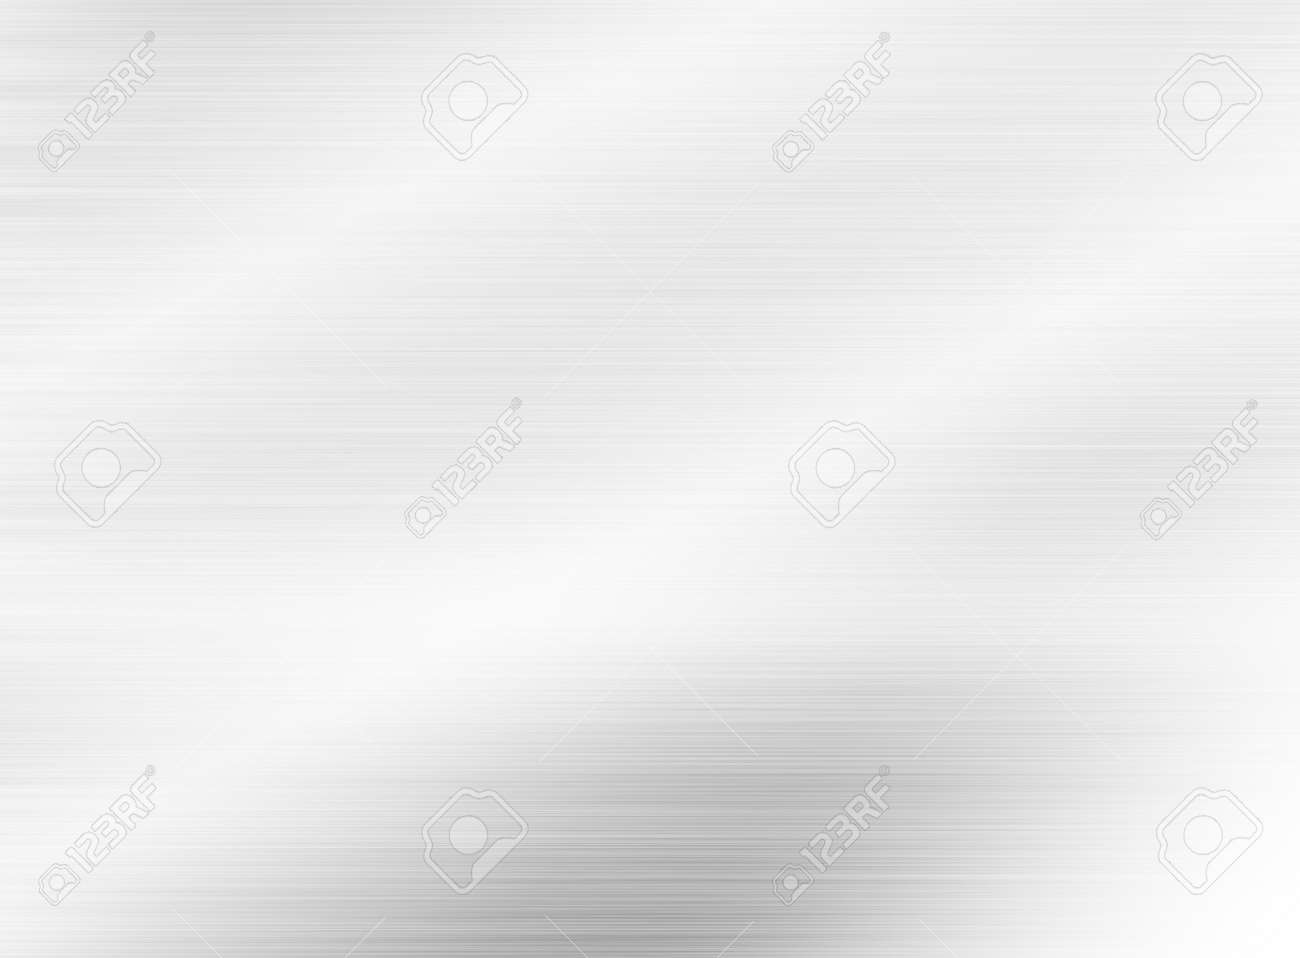 metal, stainless steel texture background with reflection - 139841818